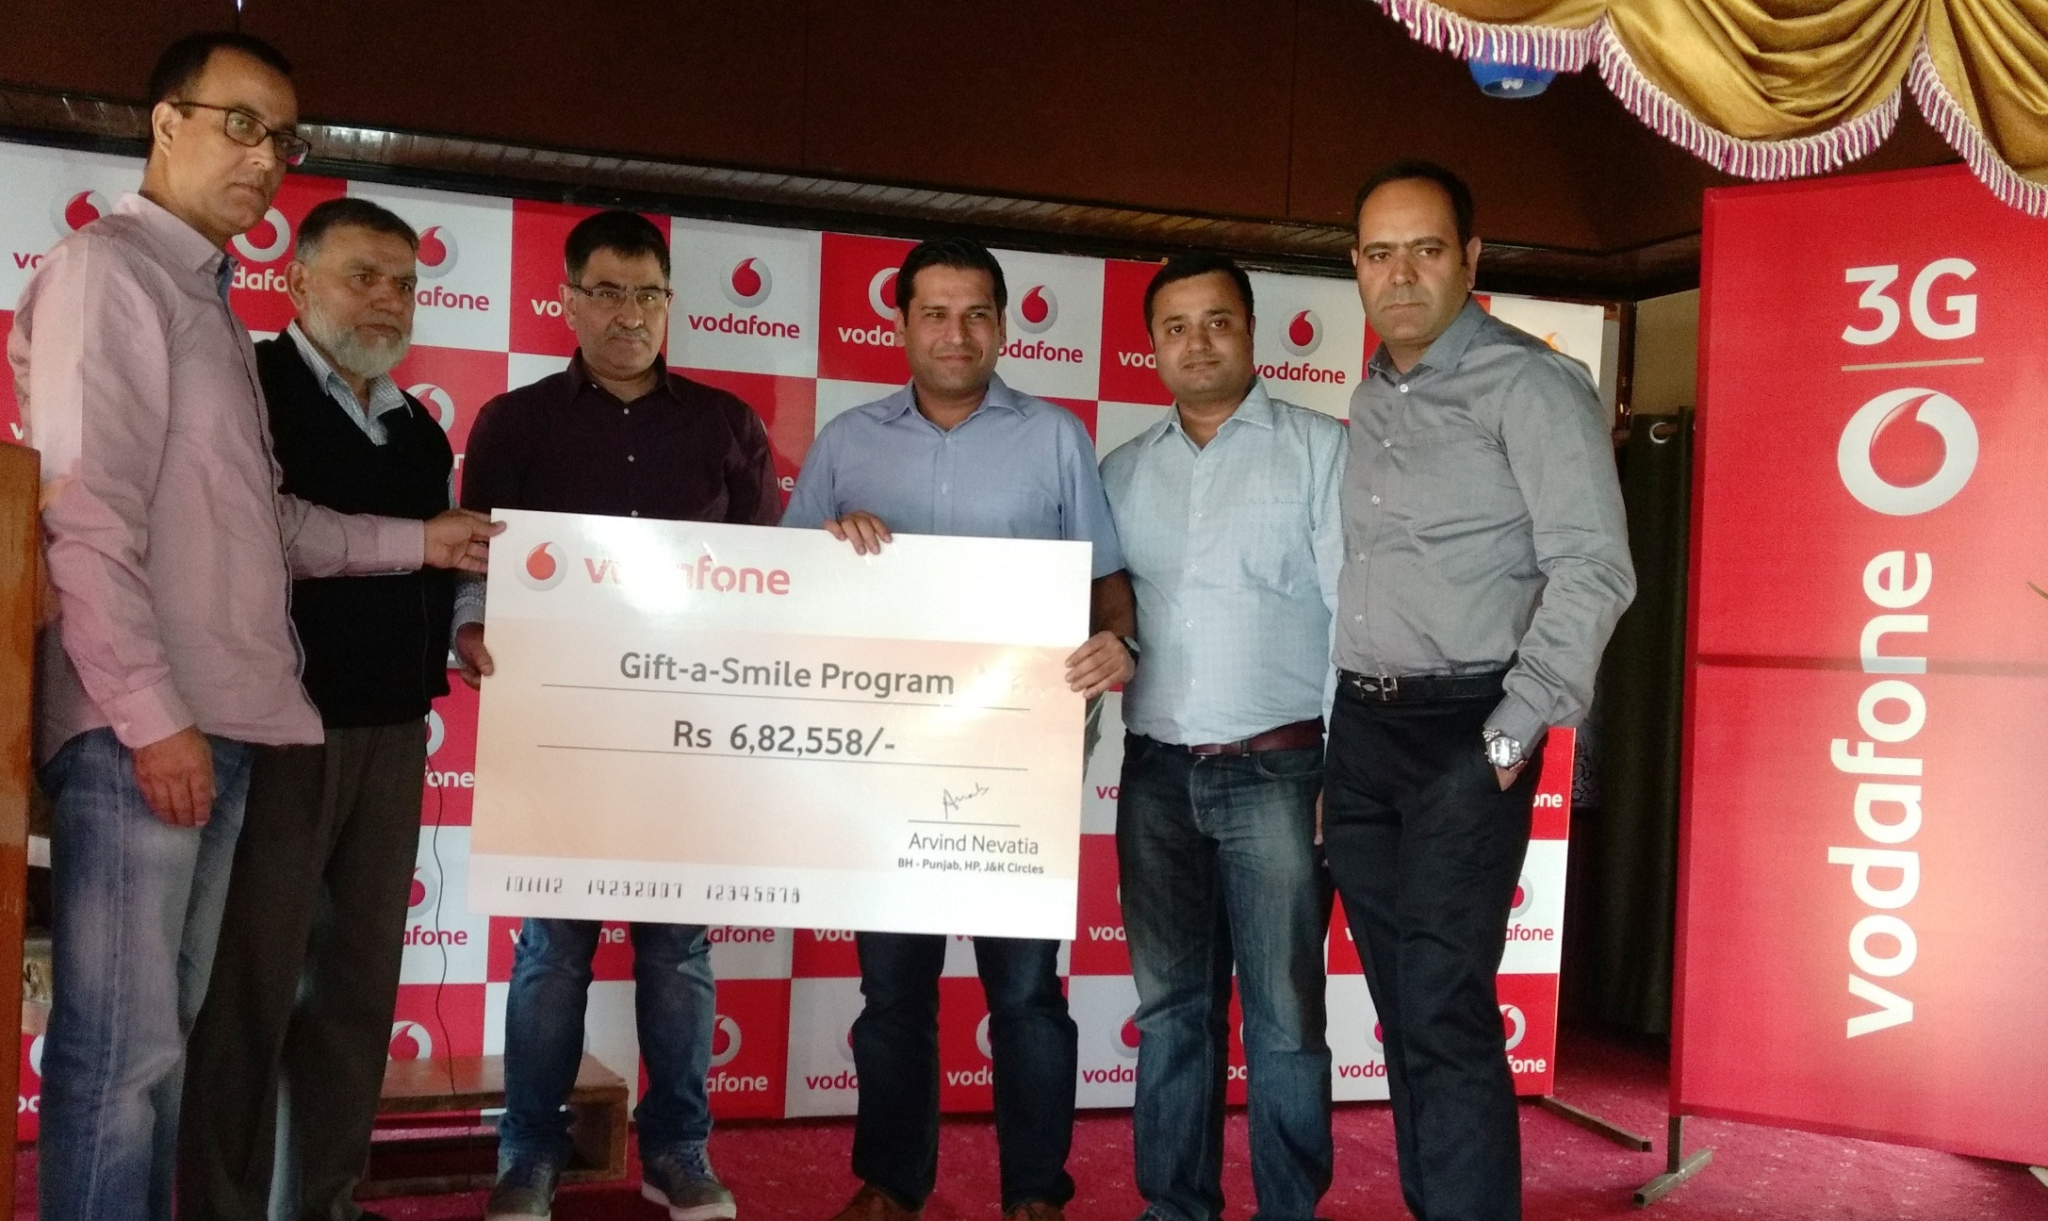 VODAFONE FACILITATES EDUCATION OF UNDERPRIVILEDGED CHILDREN IN